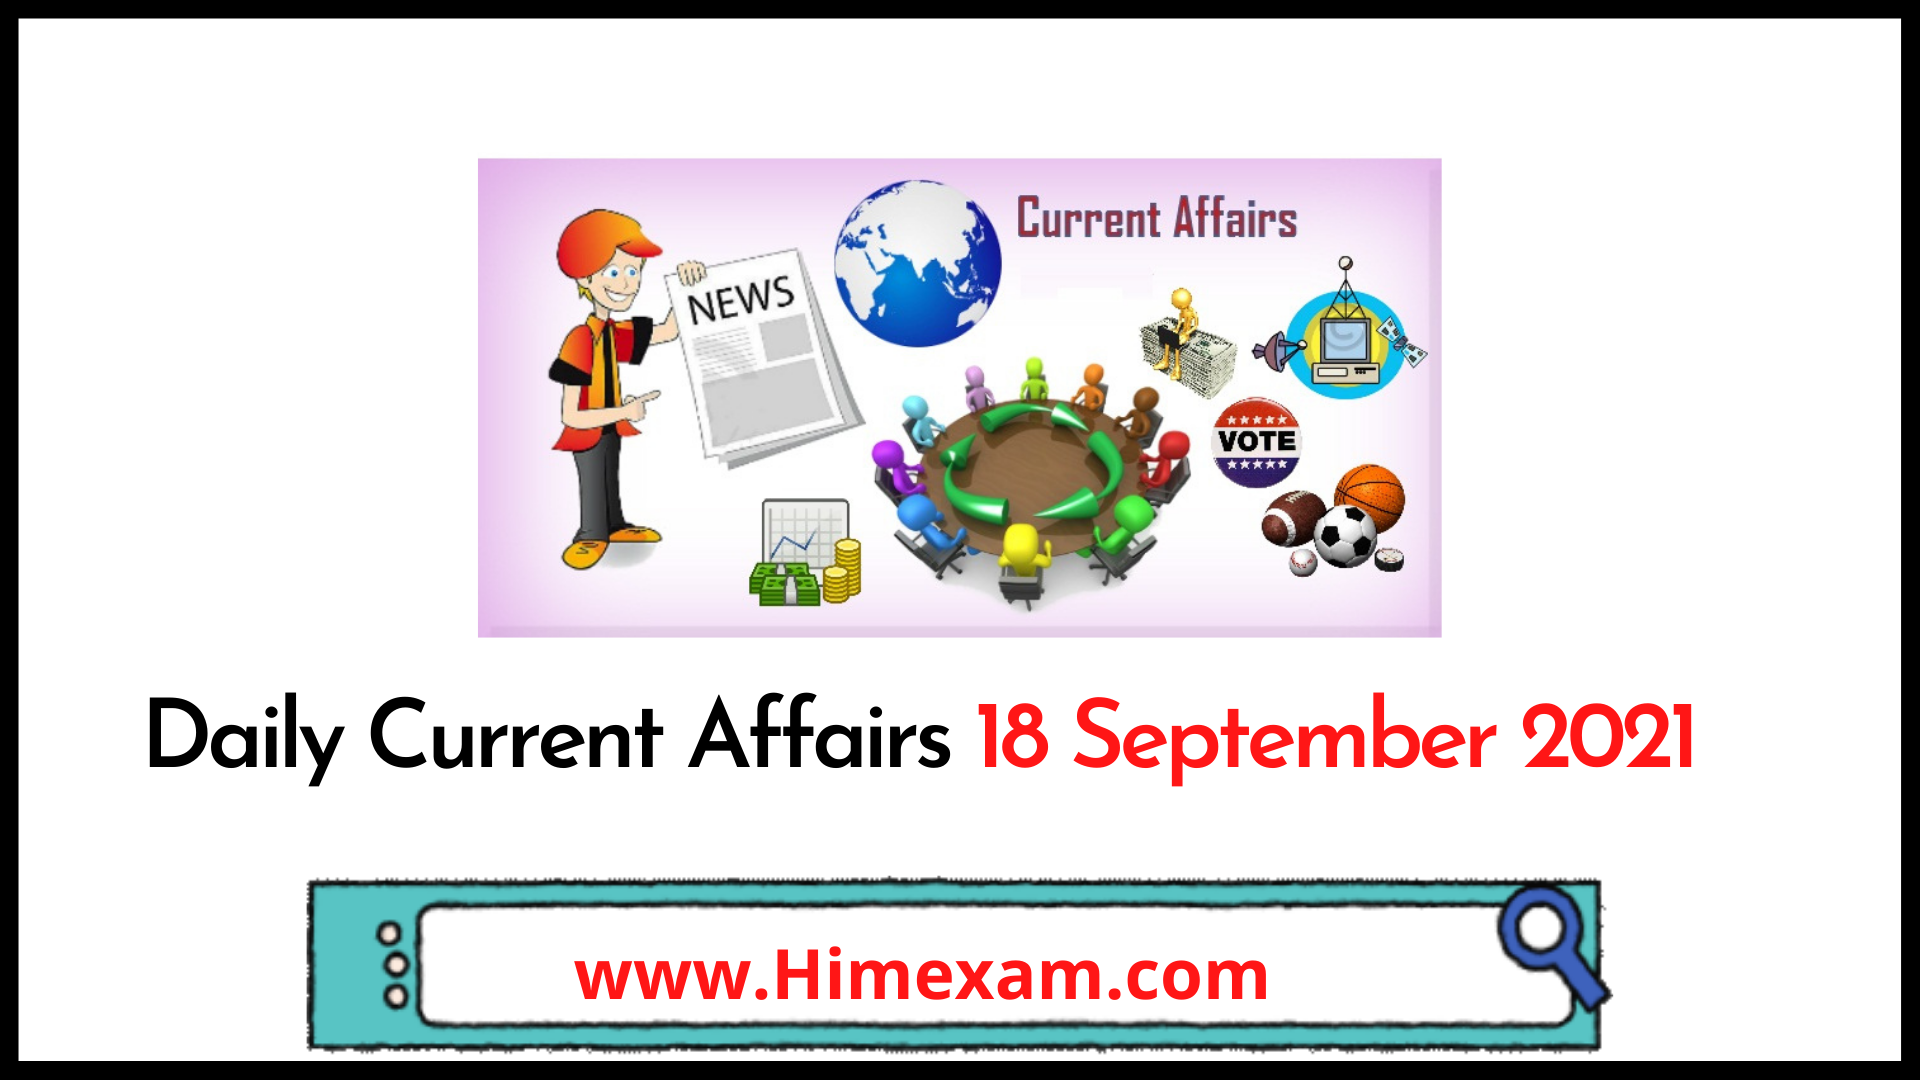 Daily Current Affairs 18 September 2021